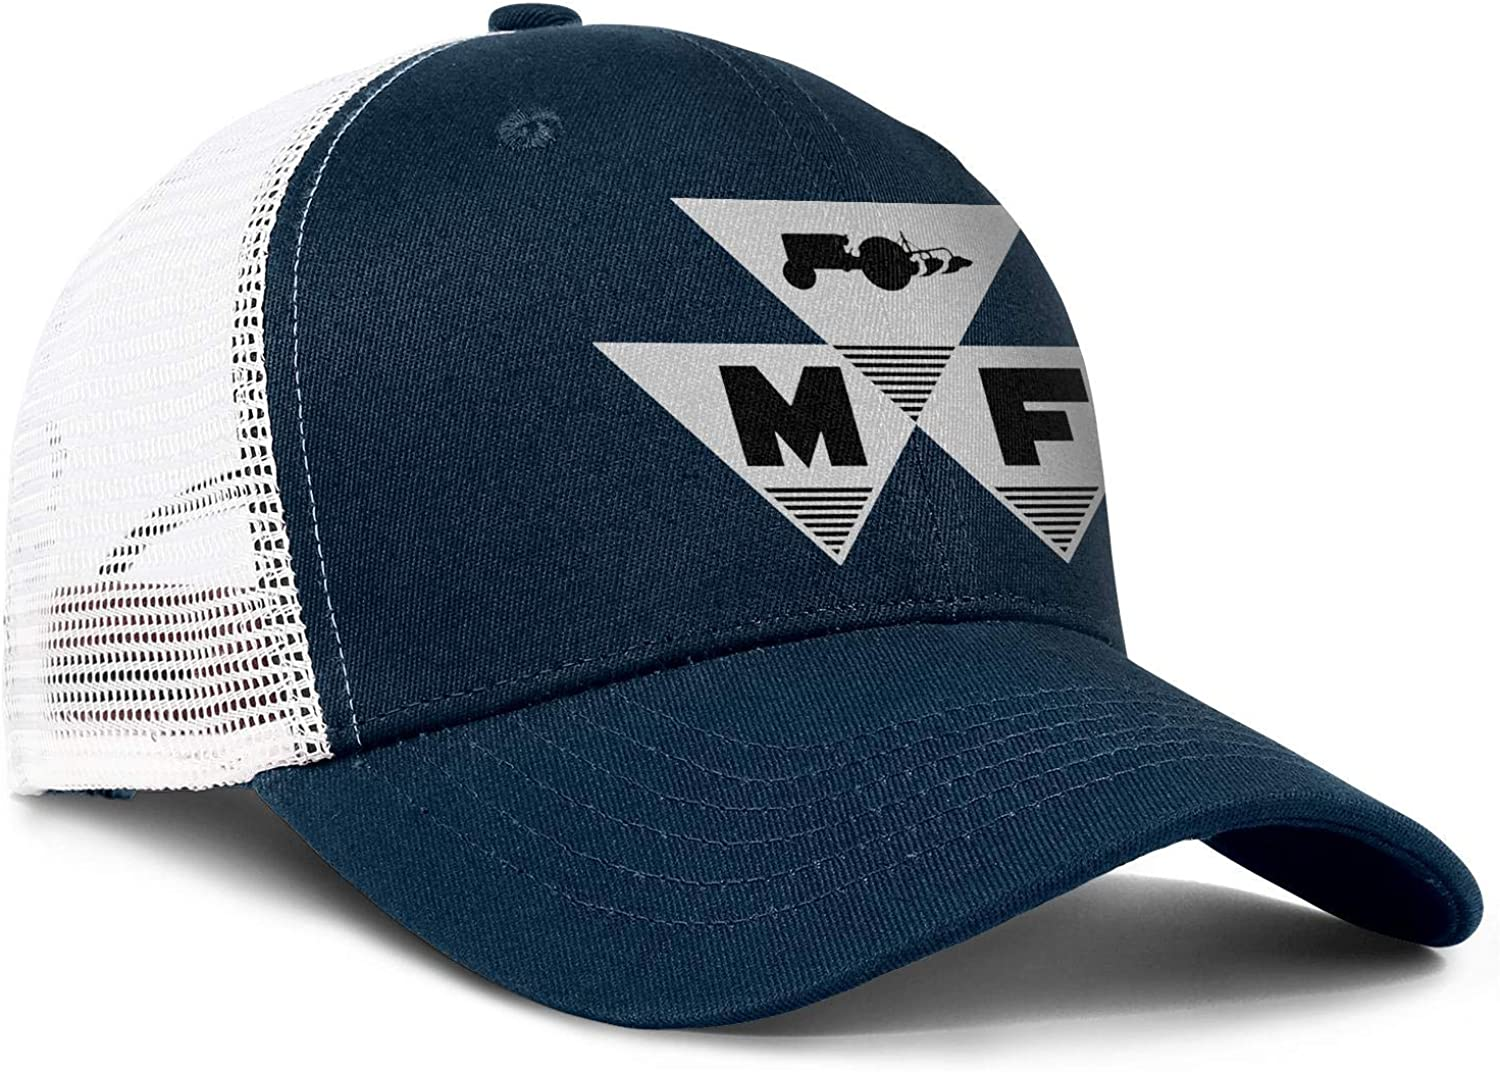 coolgood All Cotton Baseball Caps Massey-Ferguson Snapback Adjustable Mesh Hats